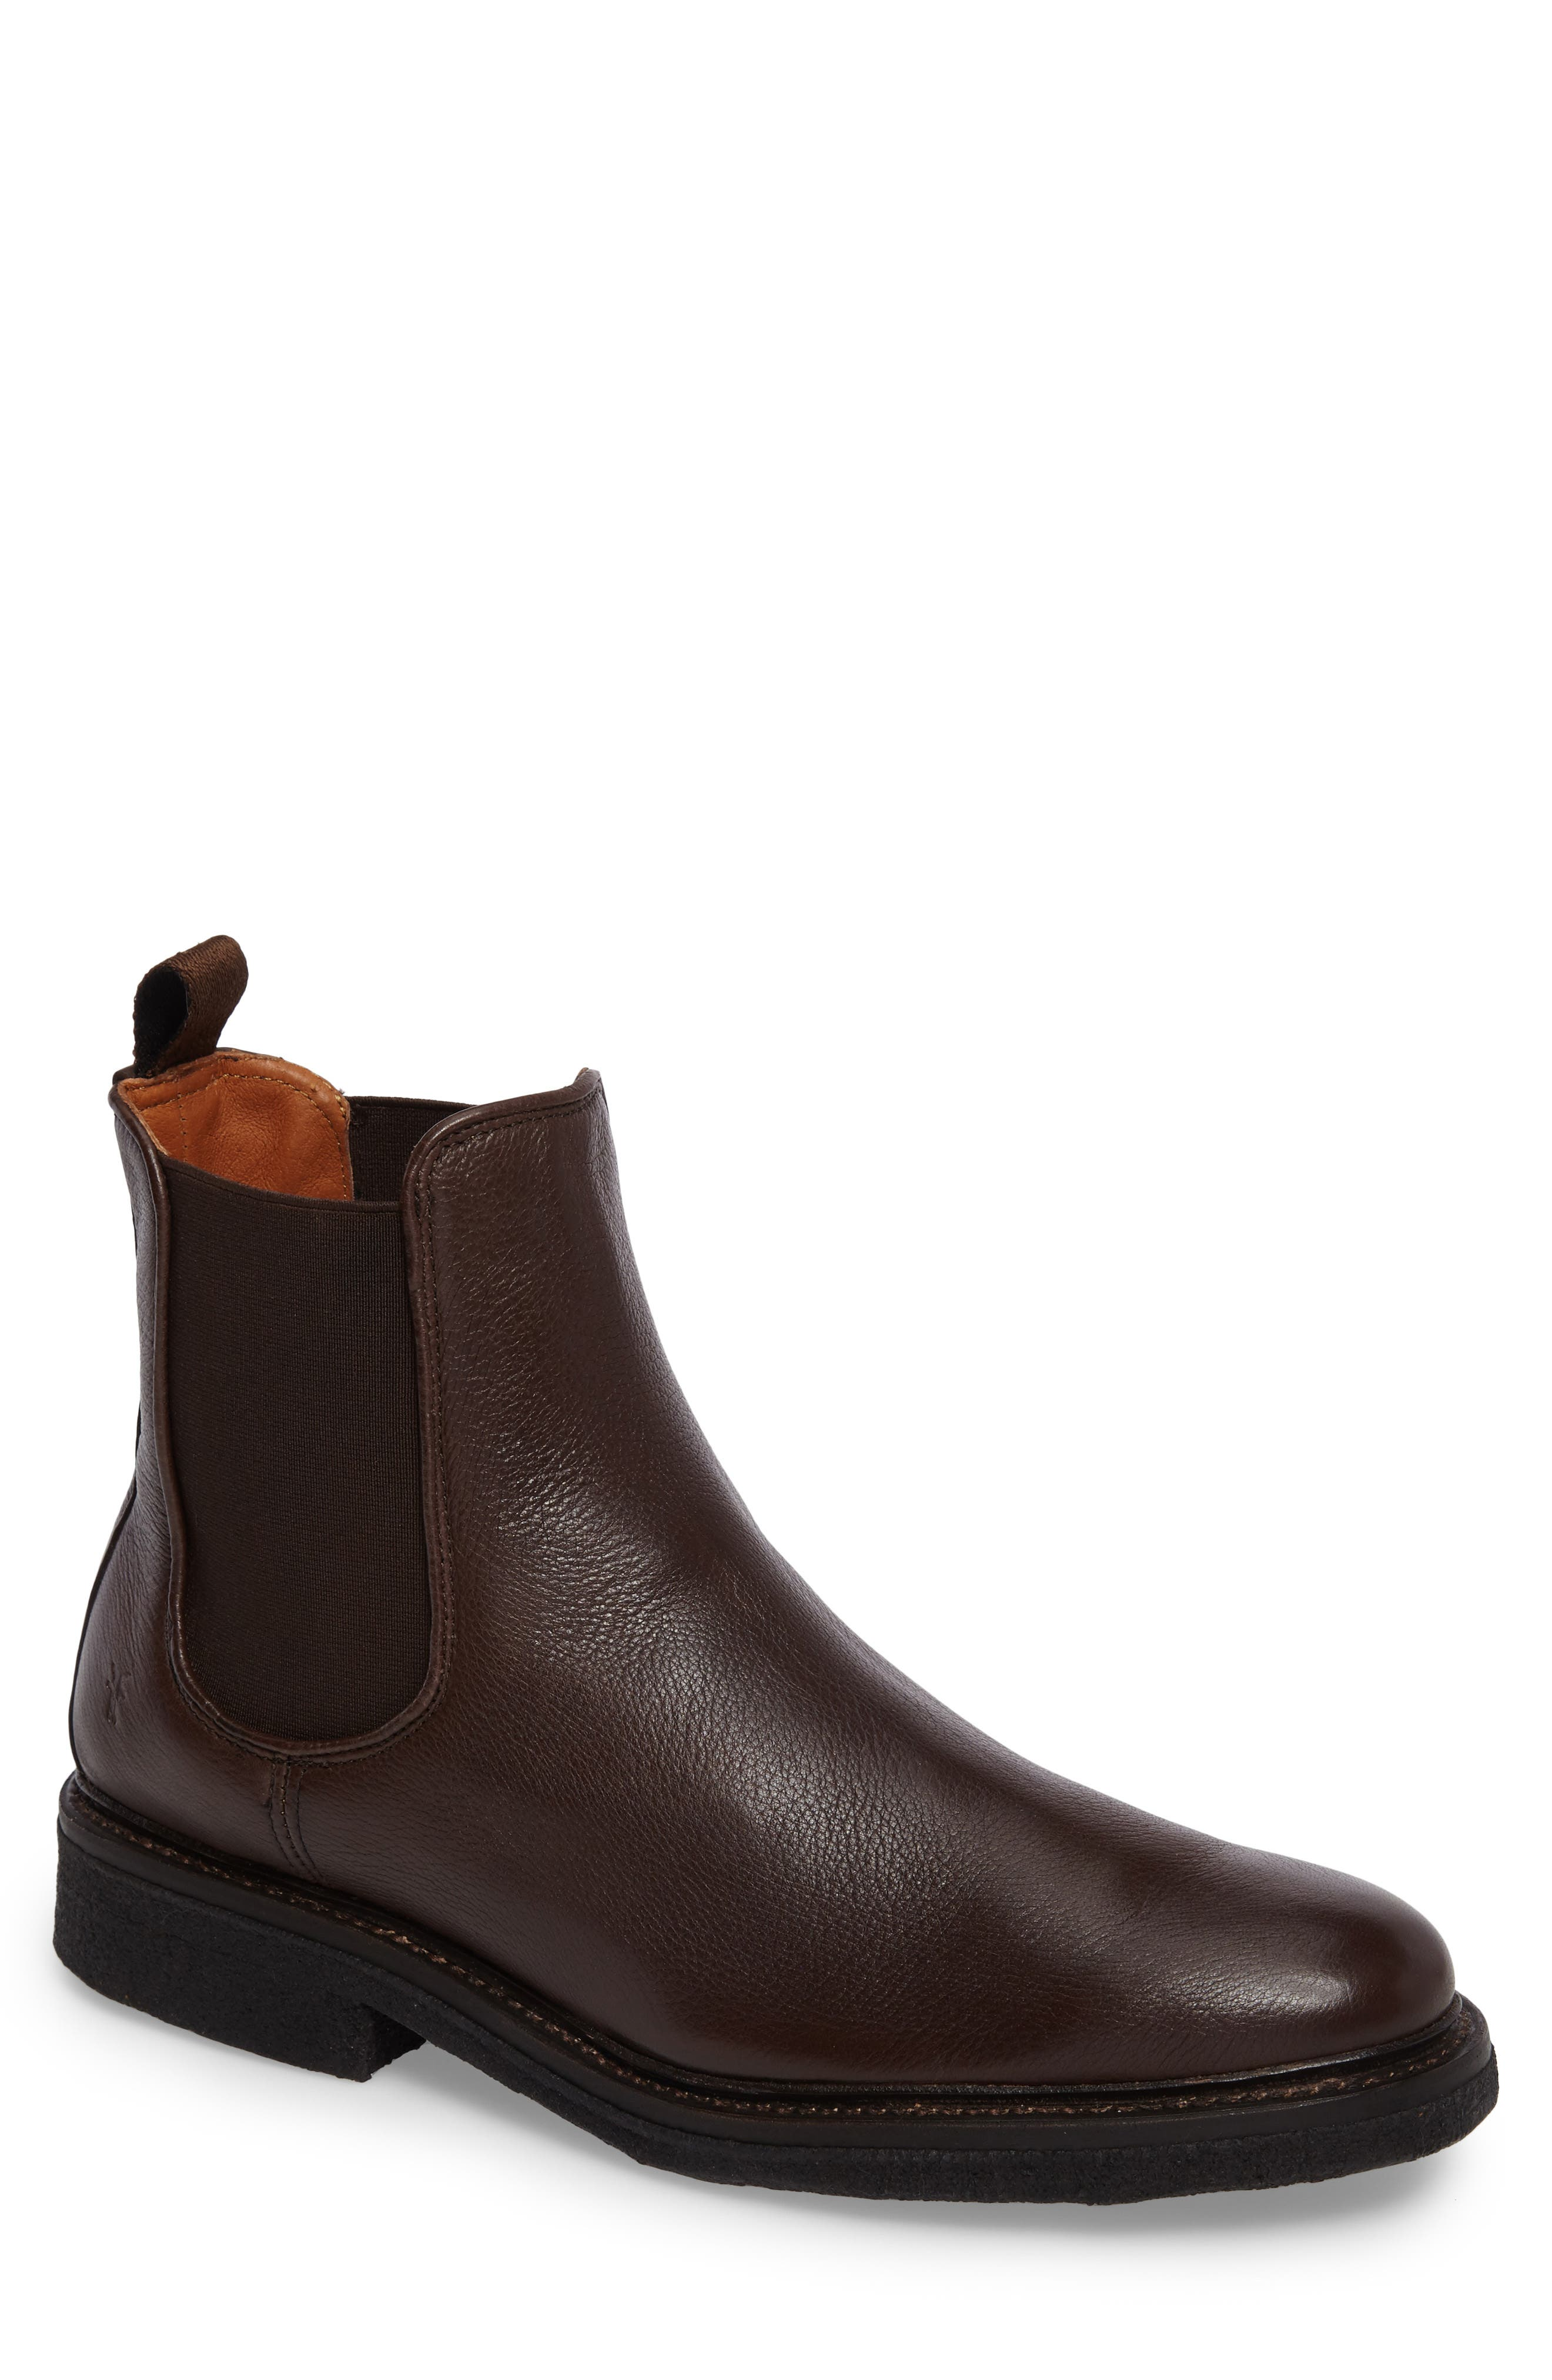 Country Chelsea Boot,                             Main thumbnail 1, color,                             200